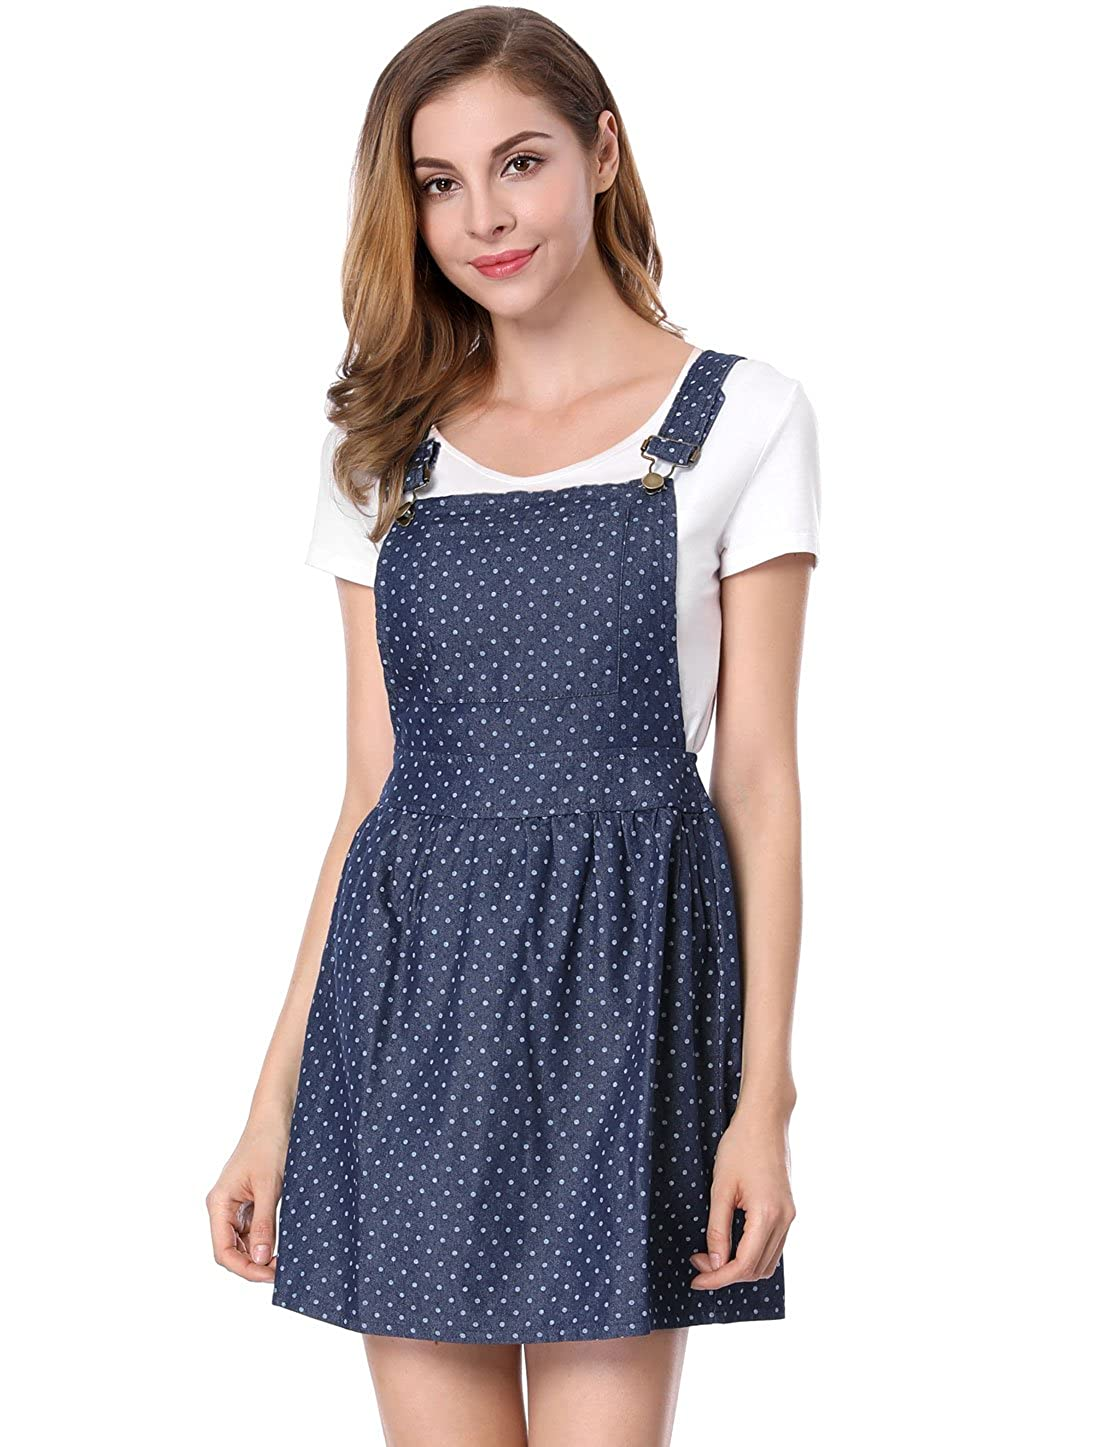 Allegra K Women's Dots Pattern Adjustable Shoulder Straps Mini Overall Dress by Allegra K